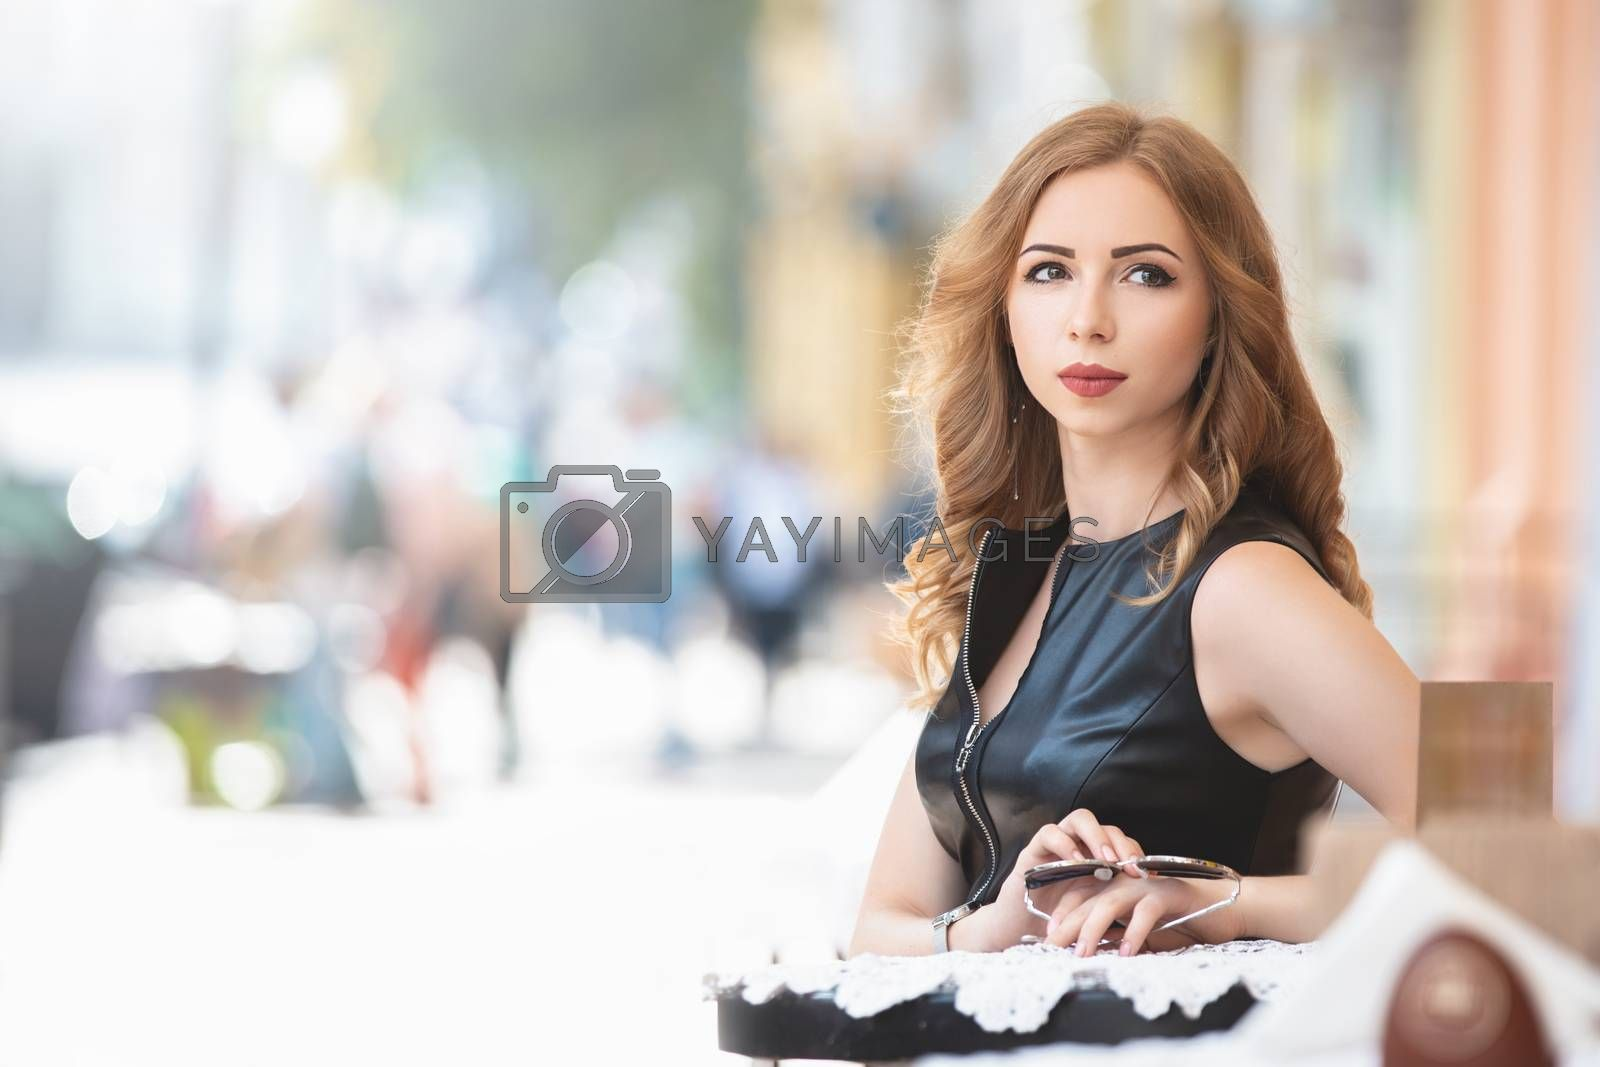 Attractive young caucasian glamour woman sitting in street cafe, waiting for someone, having coffee, having great time. She wearing black stylish dress, by Nickstock